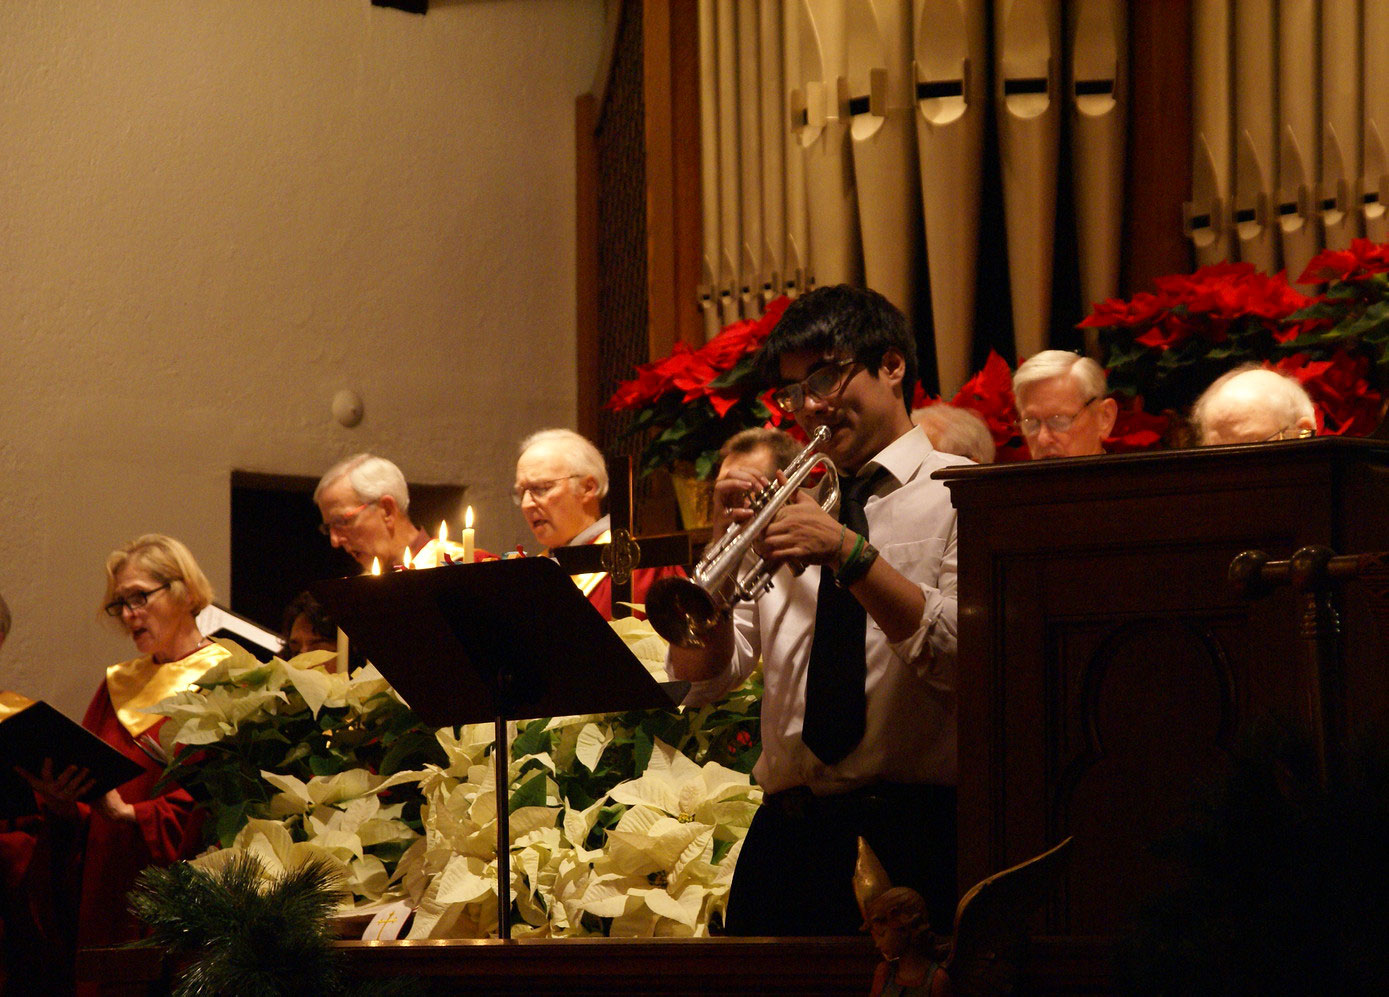 A Joyful Christmas Music Celebration, Dec. 17, 10:00 a.m.